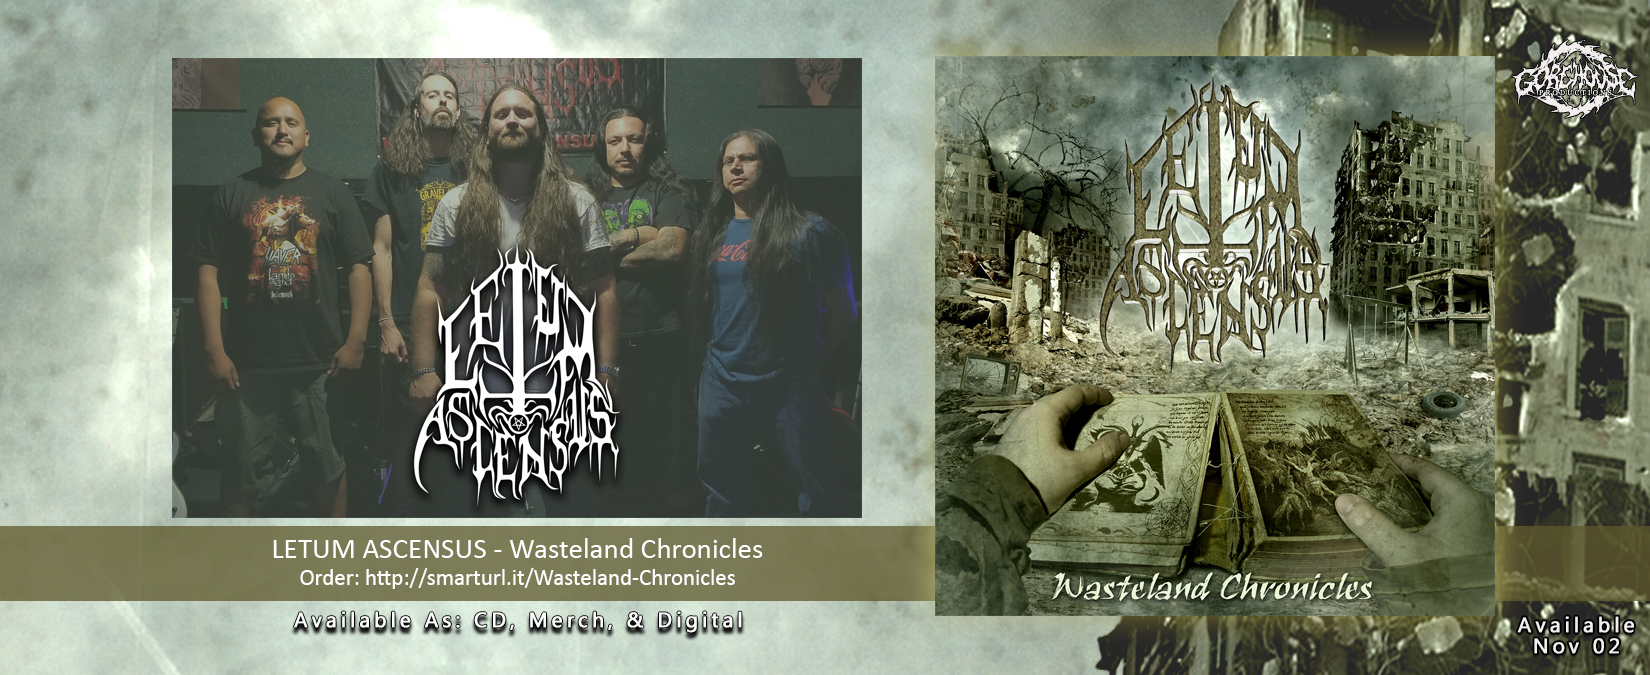 GHP056 - Letum Ascensus - Wasteland Chronicles